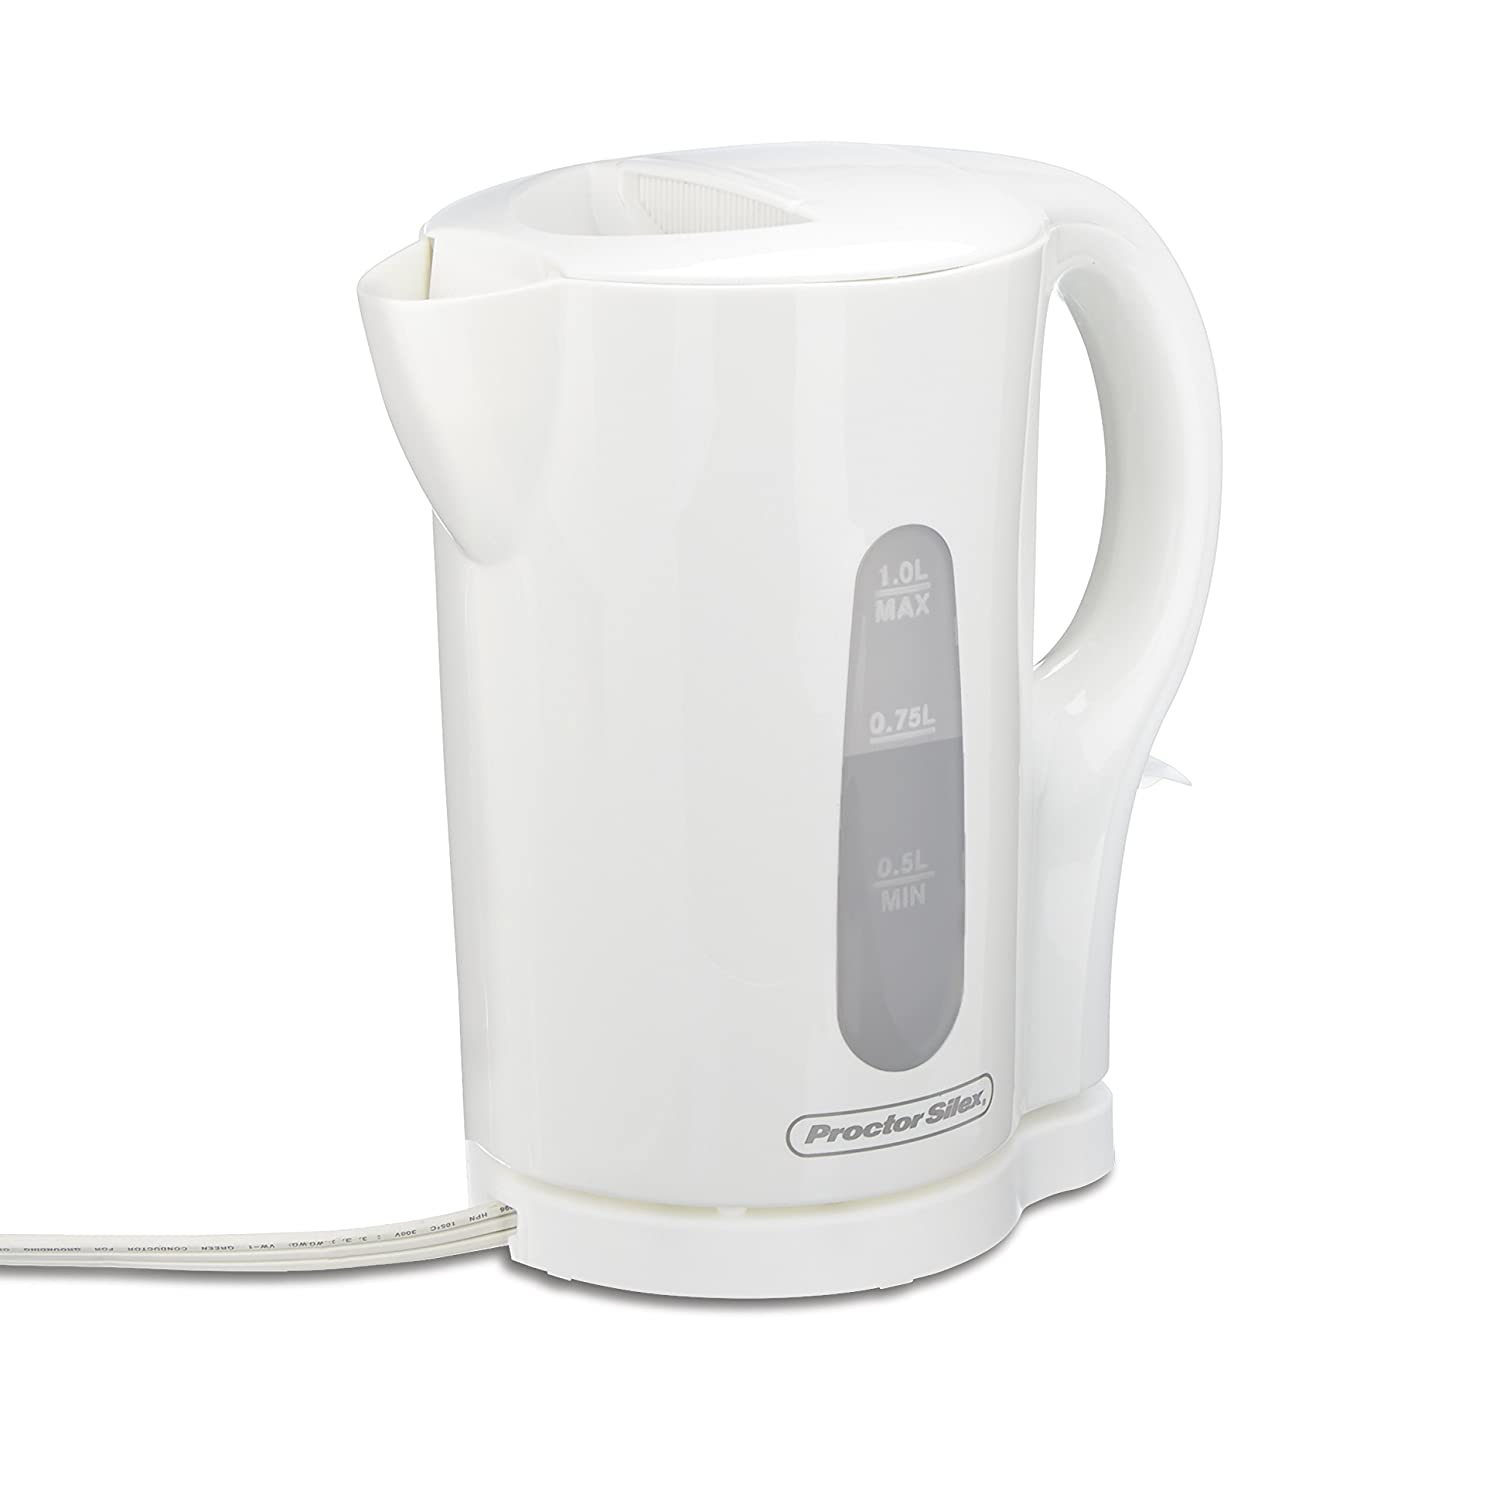 Proctor Silex 41005 Electric Tea Kettle & Hot Water Boiler, 1 Liter, White